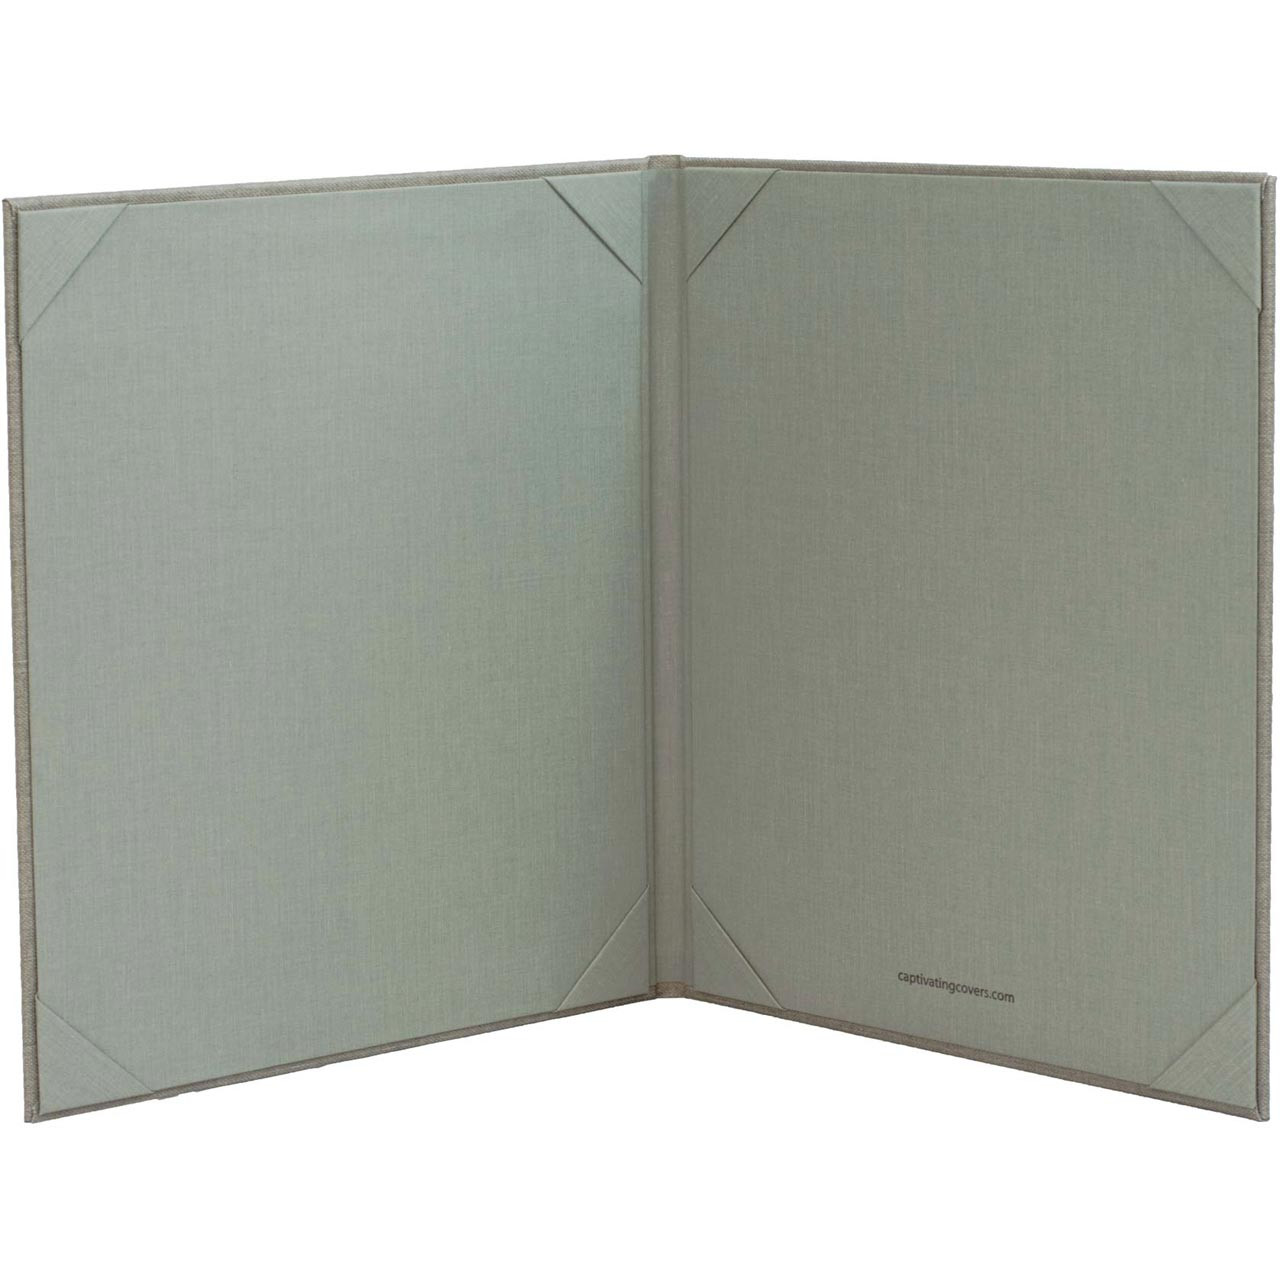 8.5 x 11 Insert, 2-Panel Menu Cover (Gray - inside)